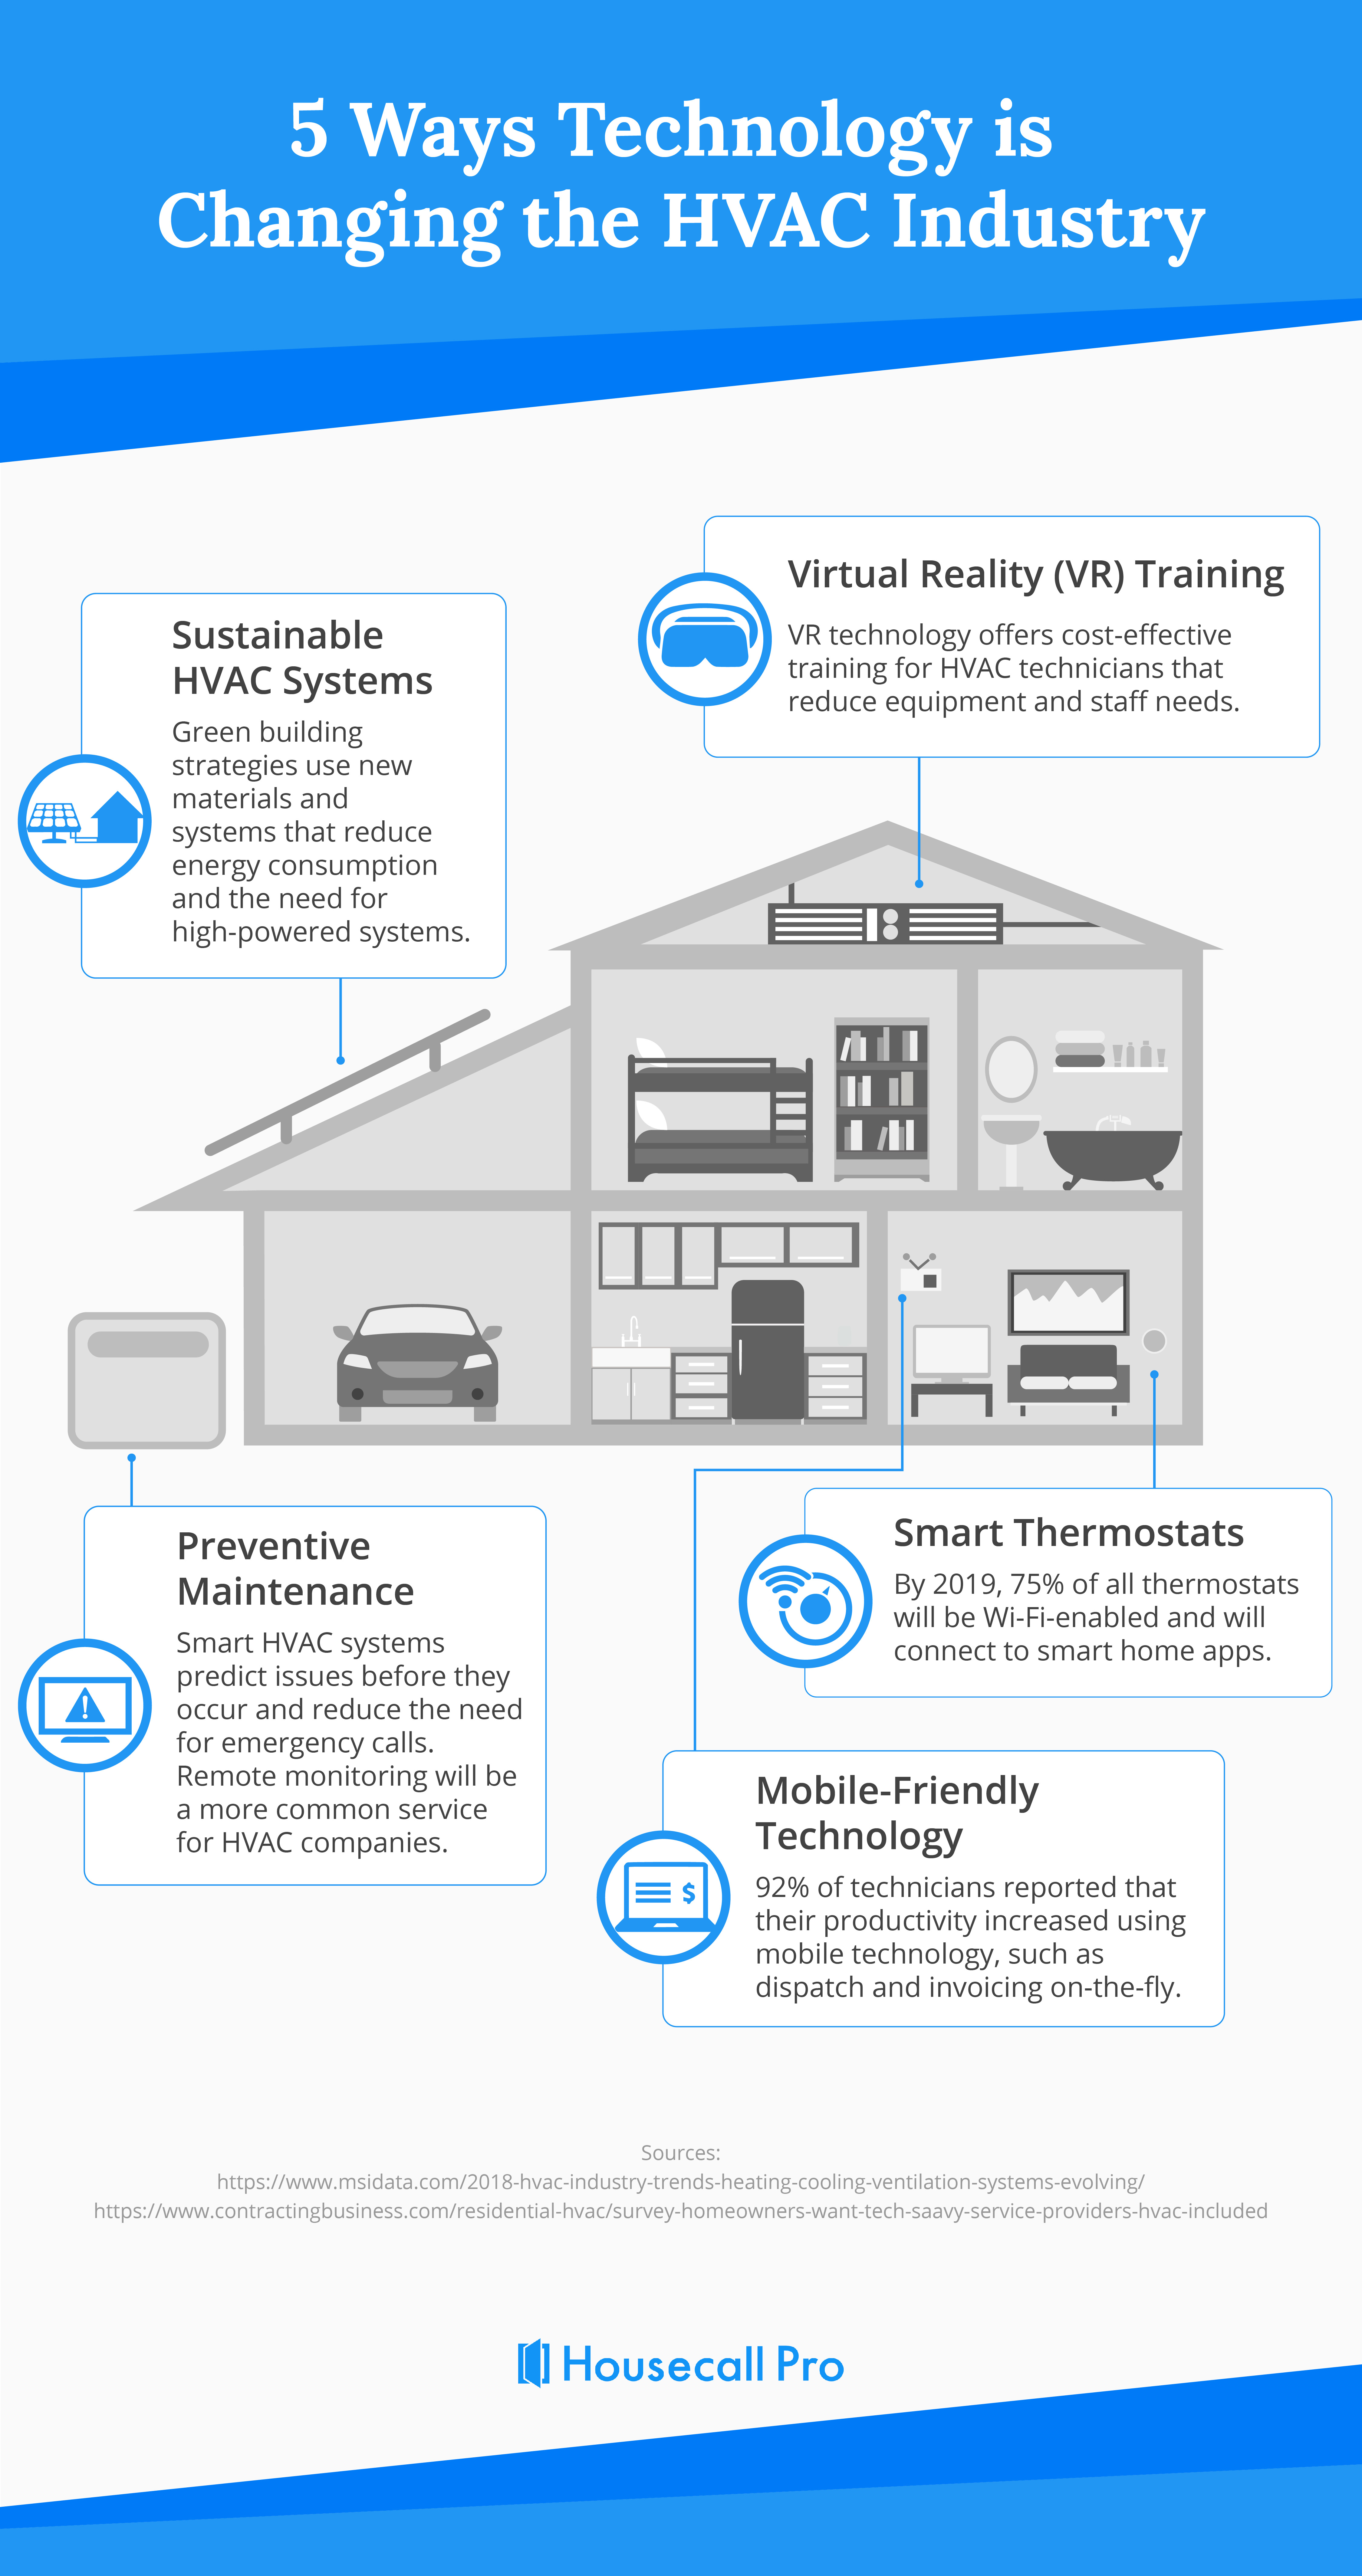 5 Ways Technology is Changing the HVAC Industry